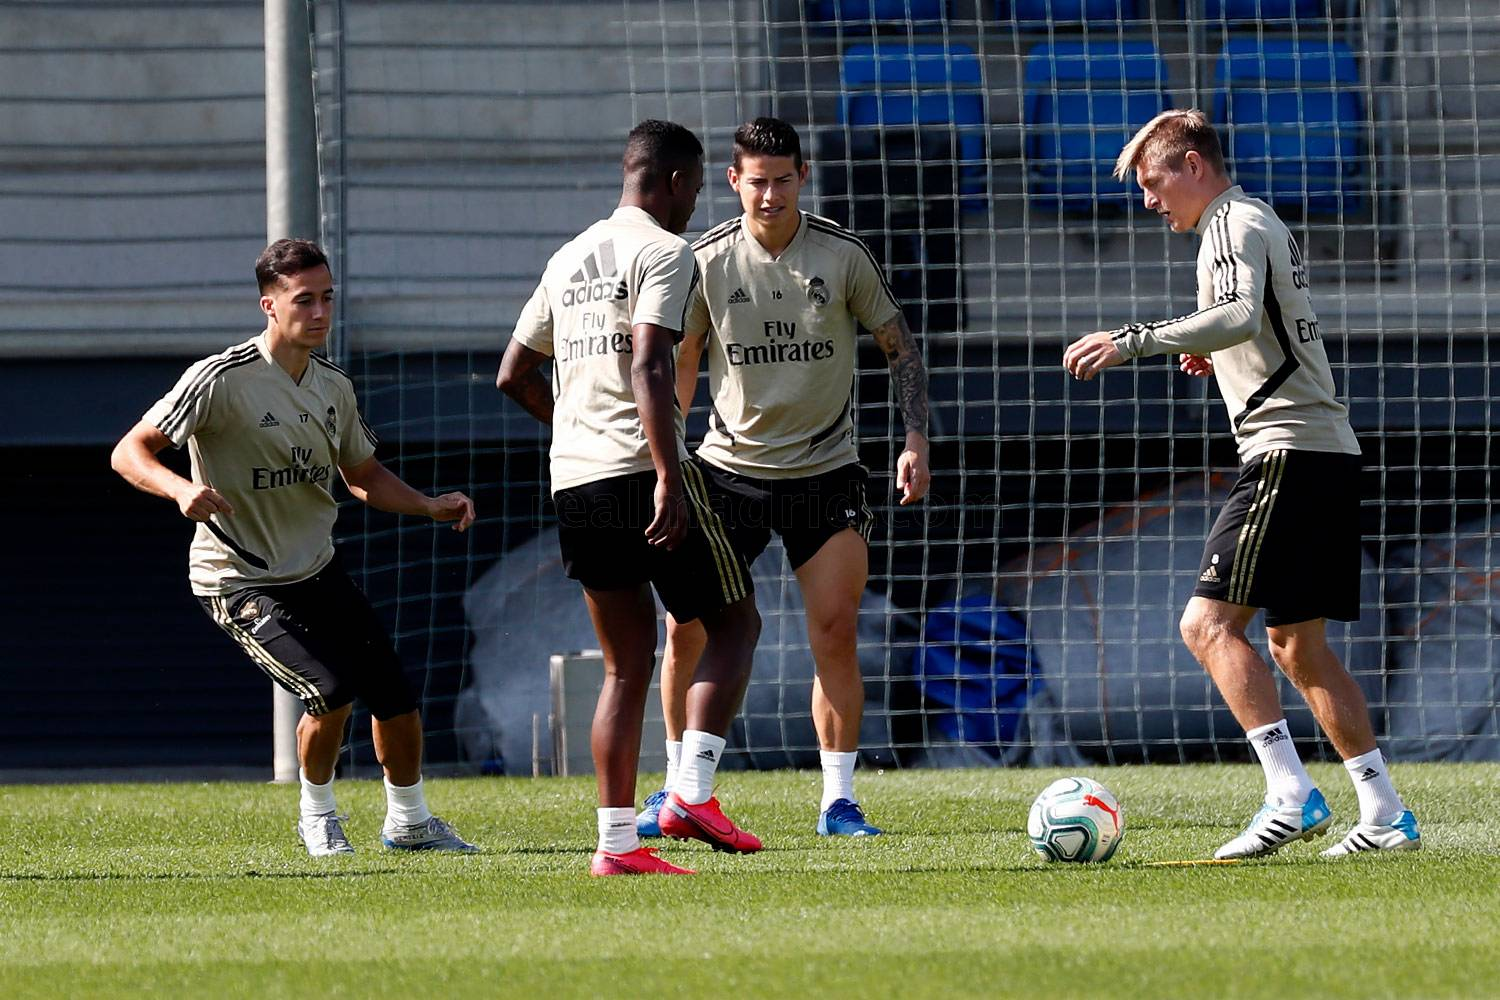 Real Madrid - Entrenamiento del Real Madrid  - 23-05-2020